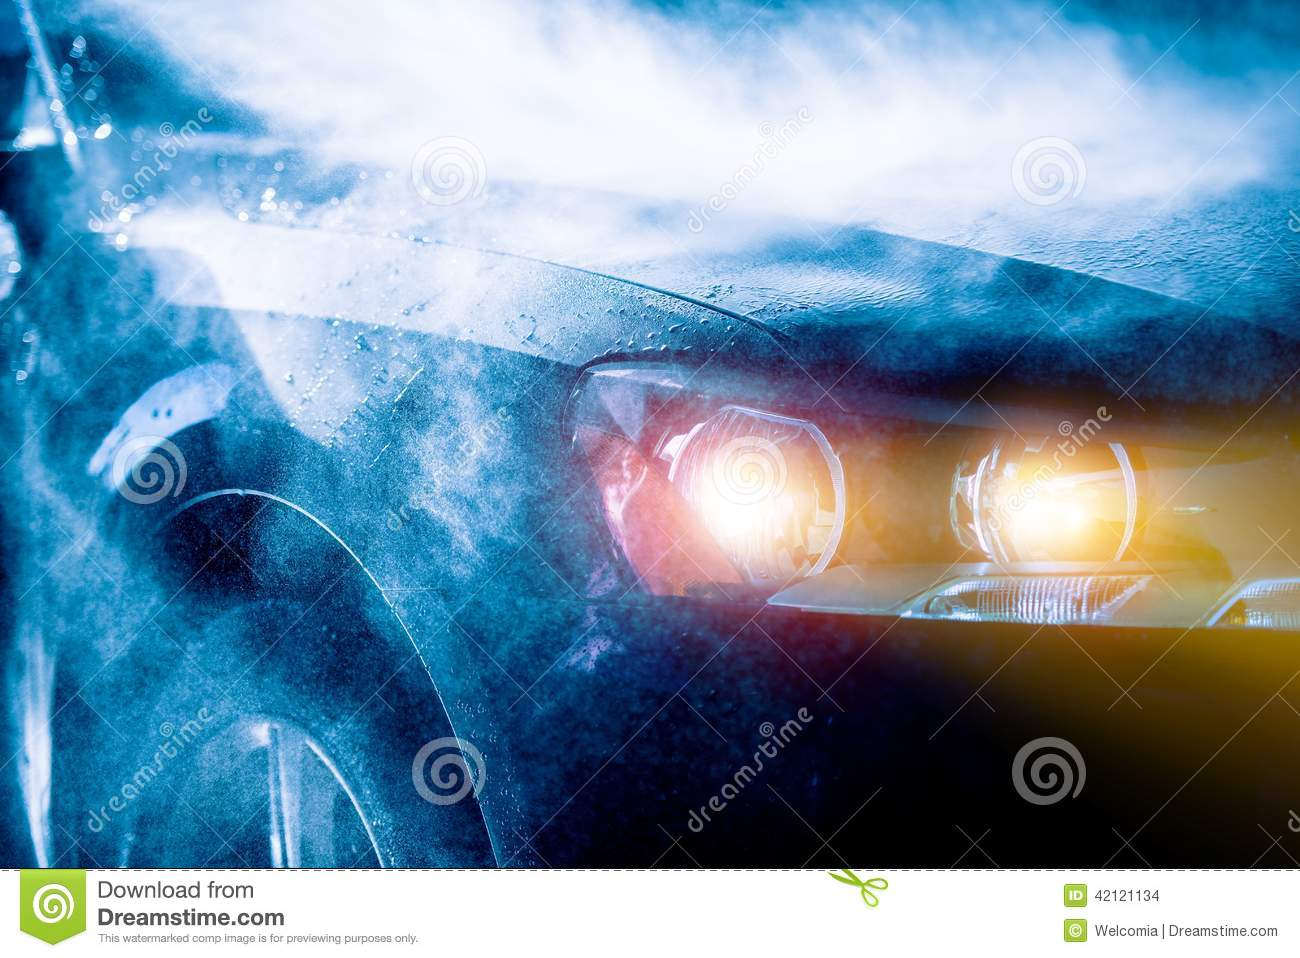 Truck Headlights In Rain : High rain car driving stock photo image of conceptual